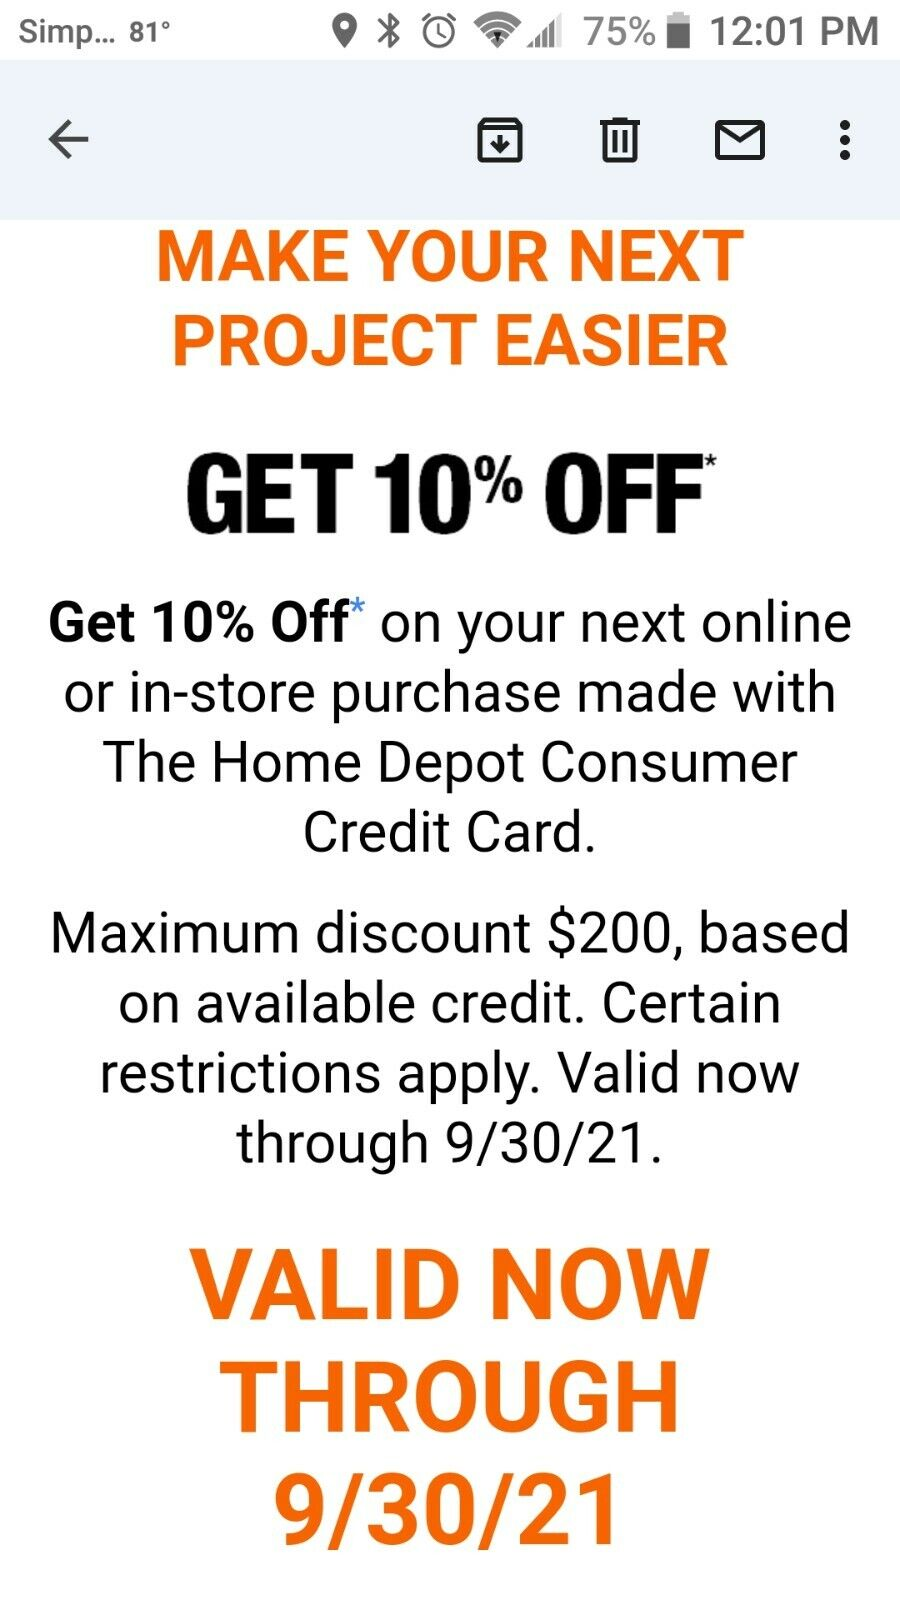 Home Depot 10 Off Coupon Online/in-store W/ Home Depot Credit Card, Exp 9/30/21 - $39.89